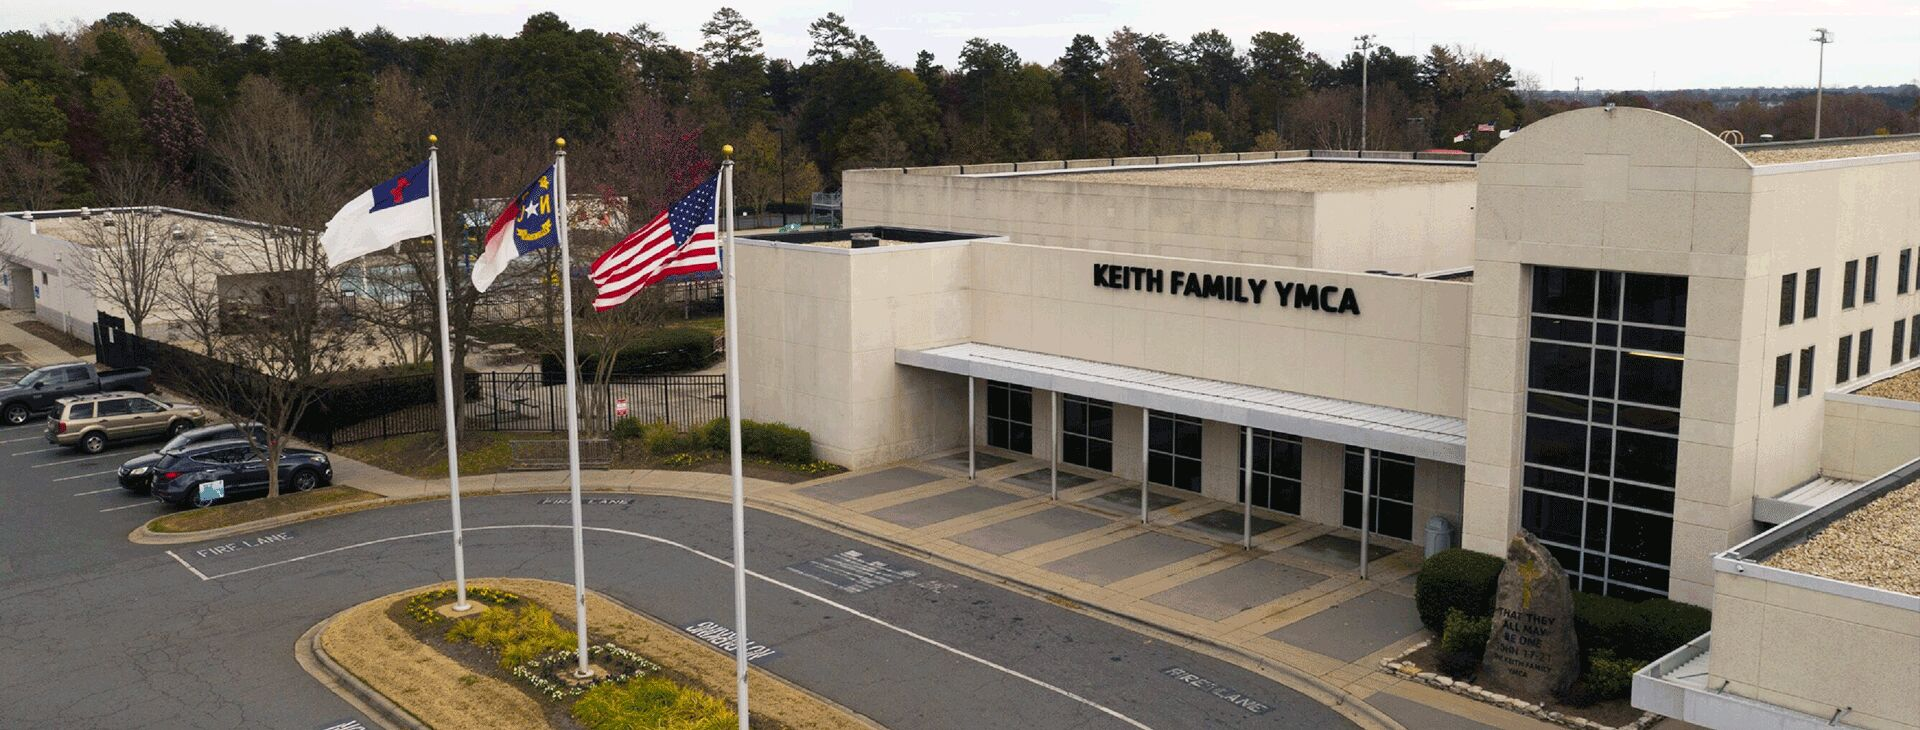 Keith YMCA - A center for all ages